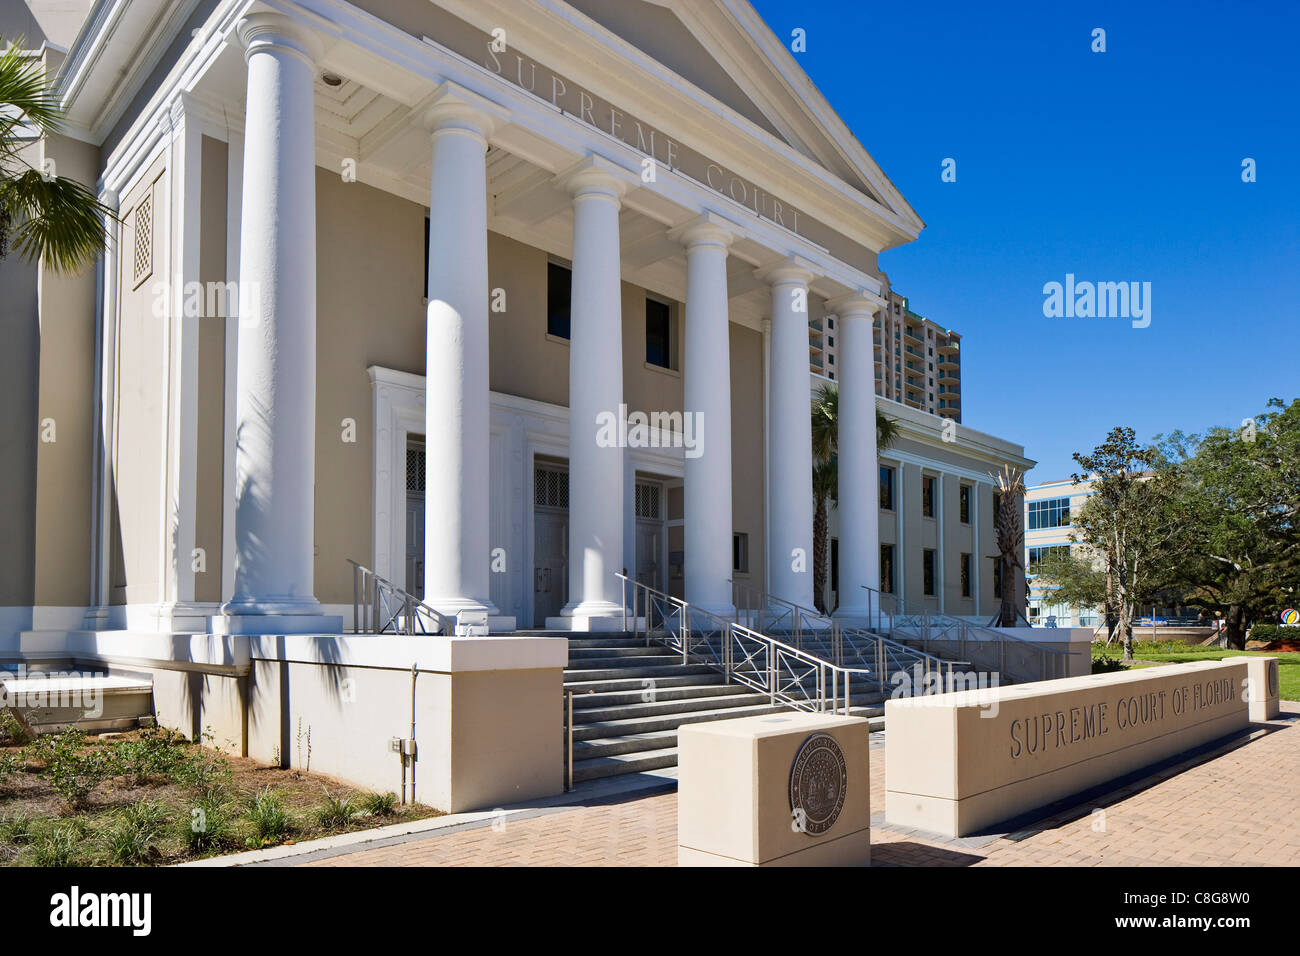 The State Supreme Court of Florida building, Tallahassee, Florida, USA - Stock Image